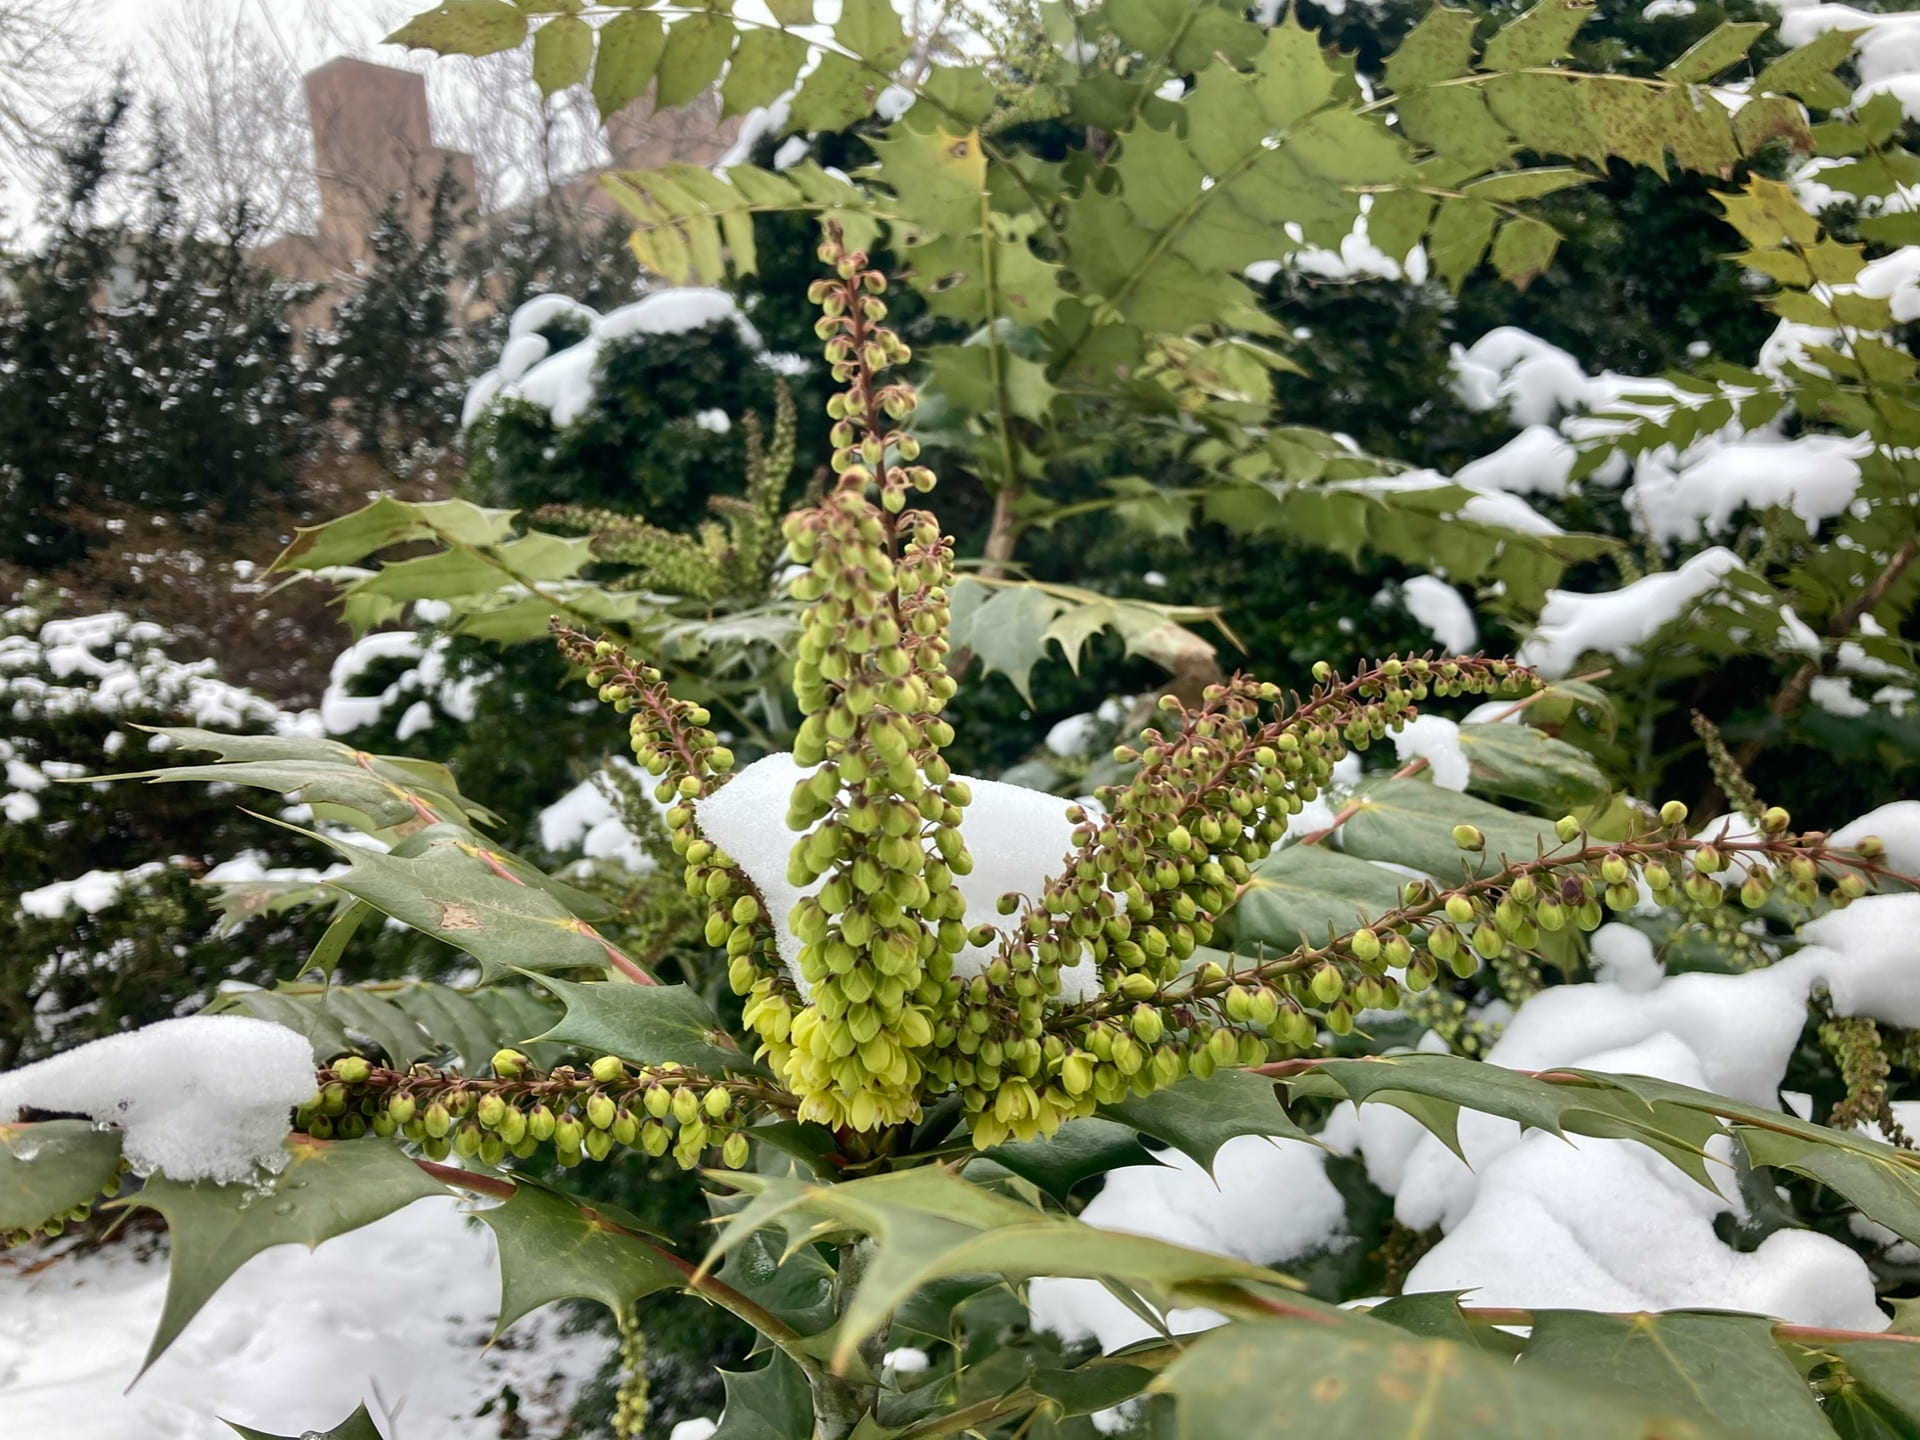 Mahonia x media getting ready to bloom.